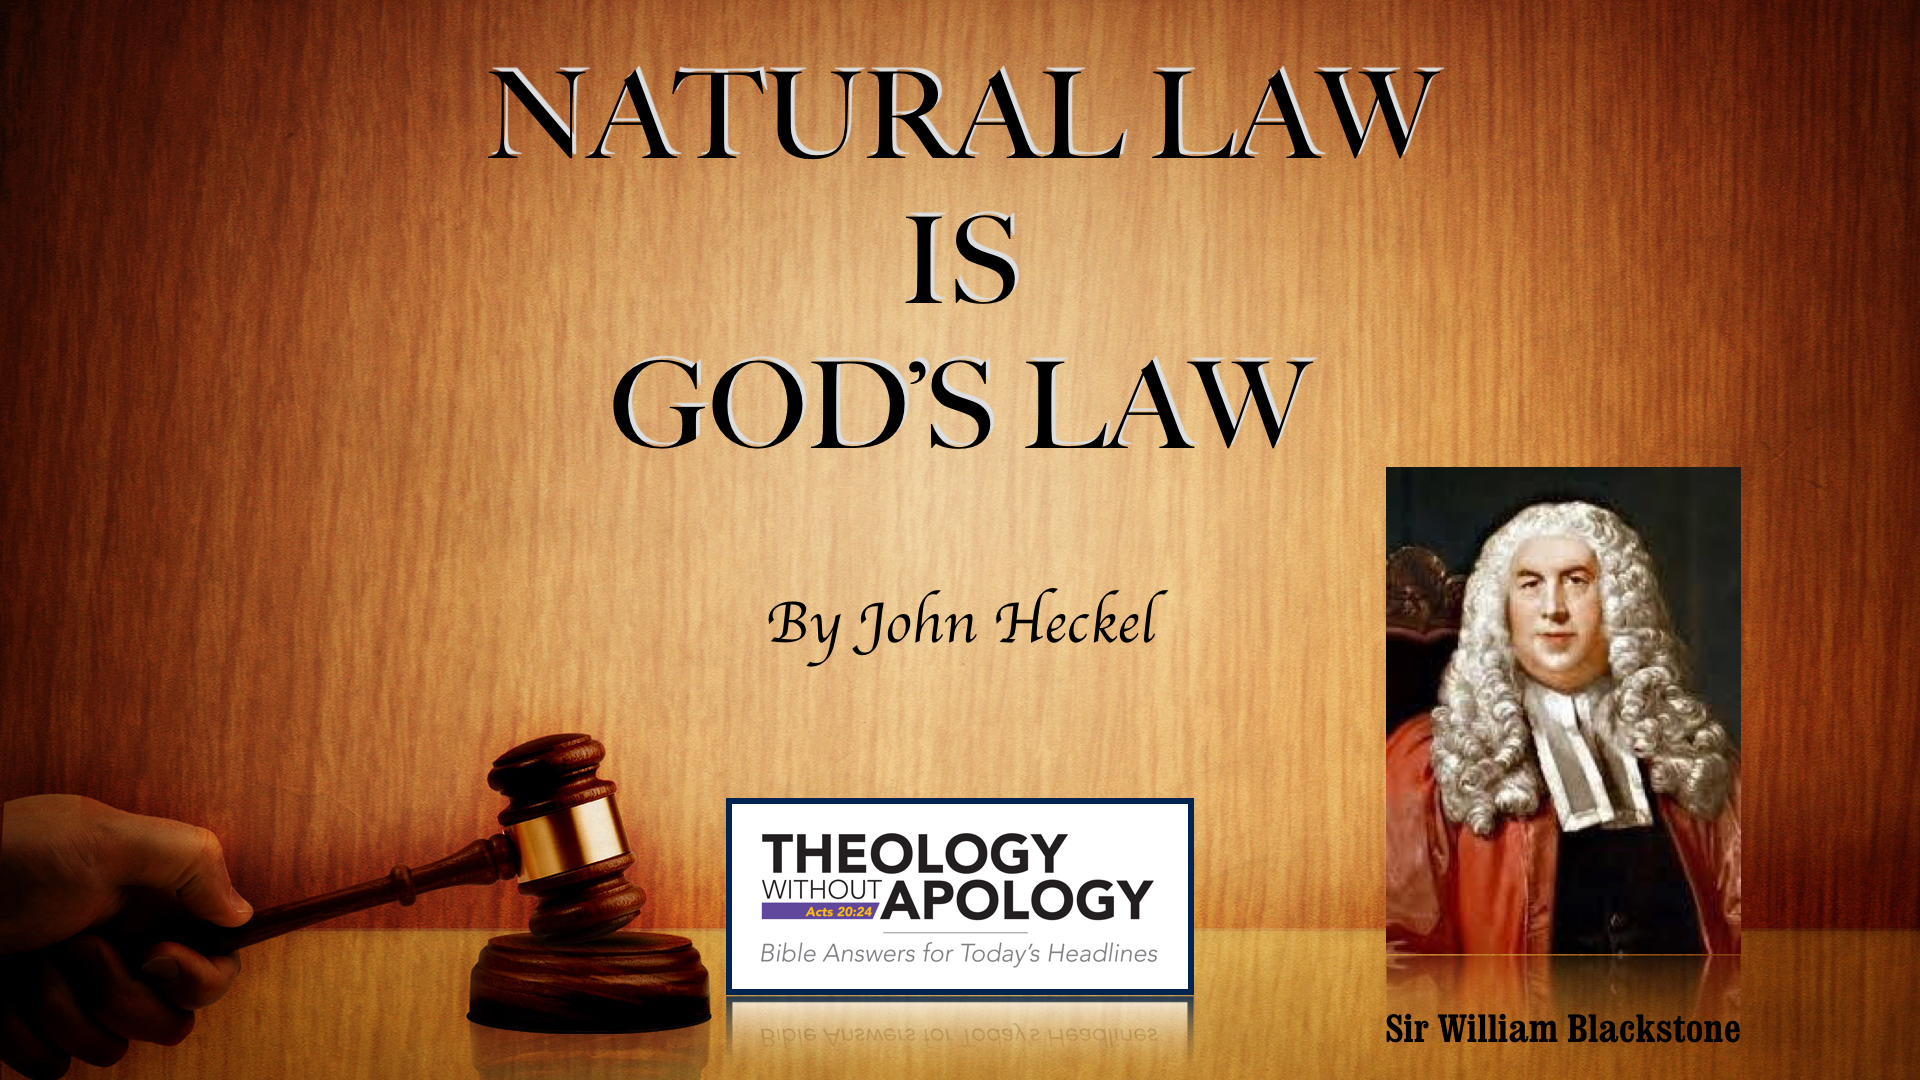 natural law 98 quotes have been tagged as natural-law: cs lewis: 'the tao, which others may call natural law or traditional morality or the first principles of pra.